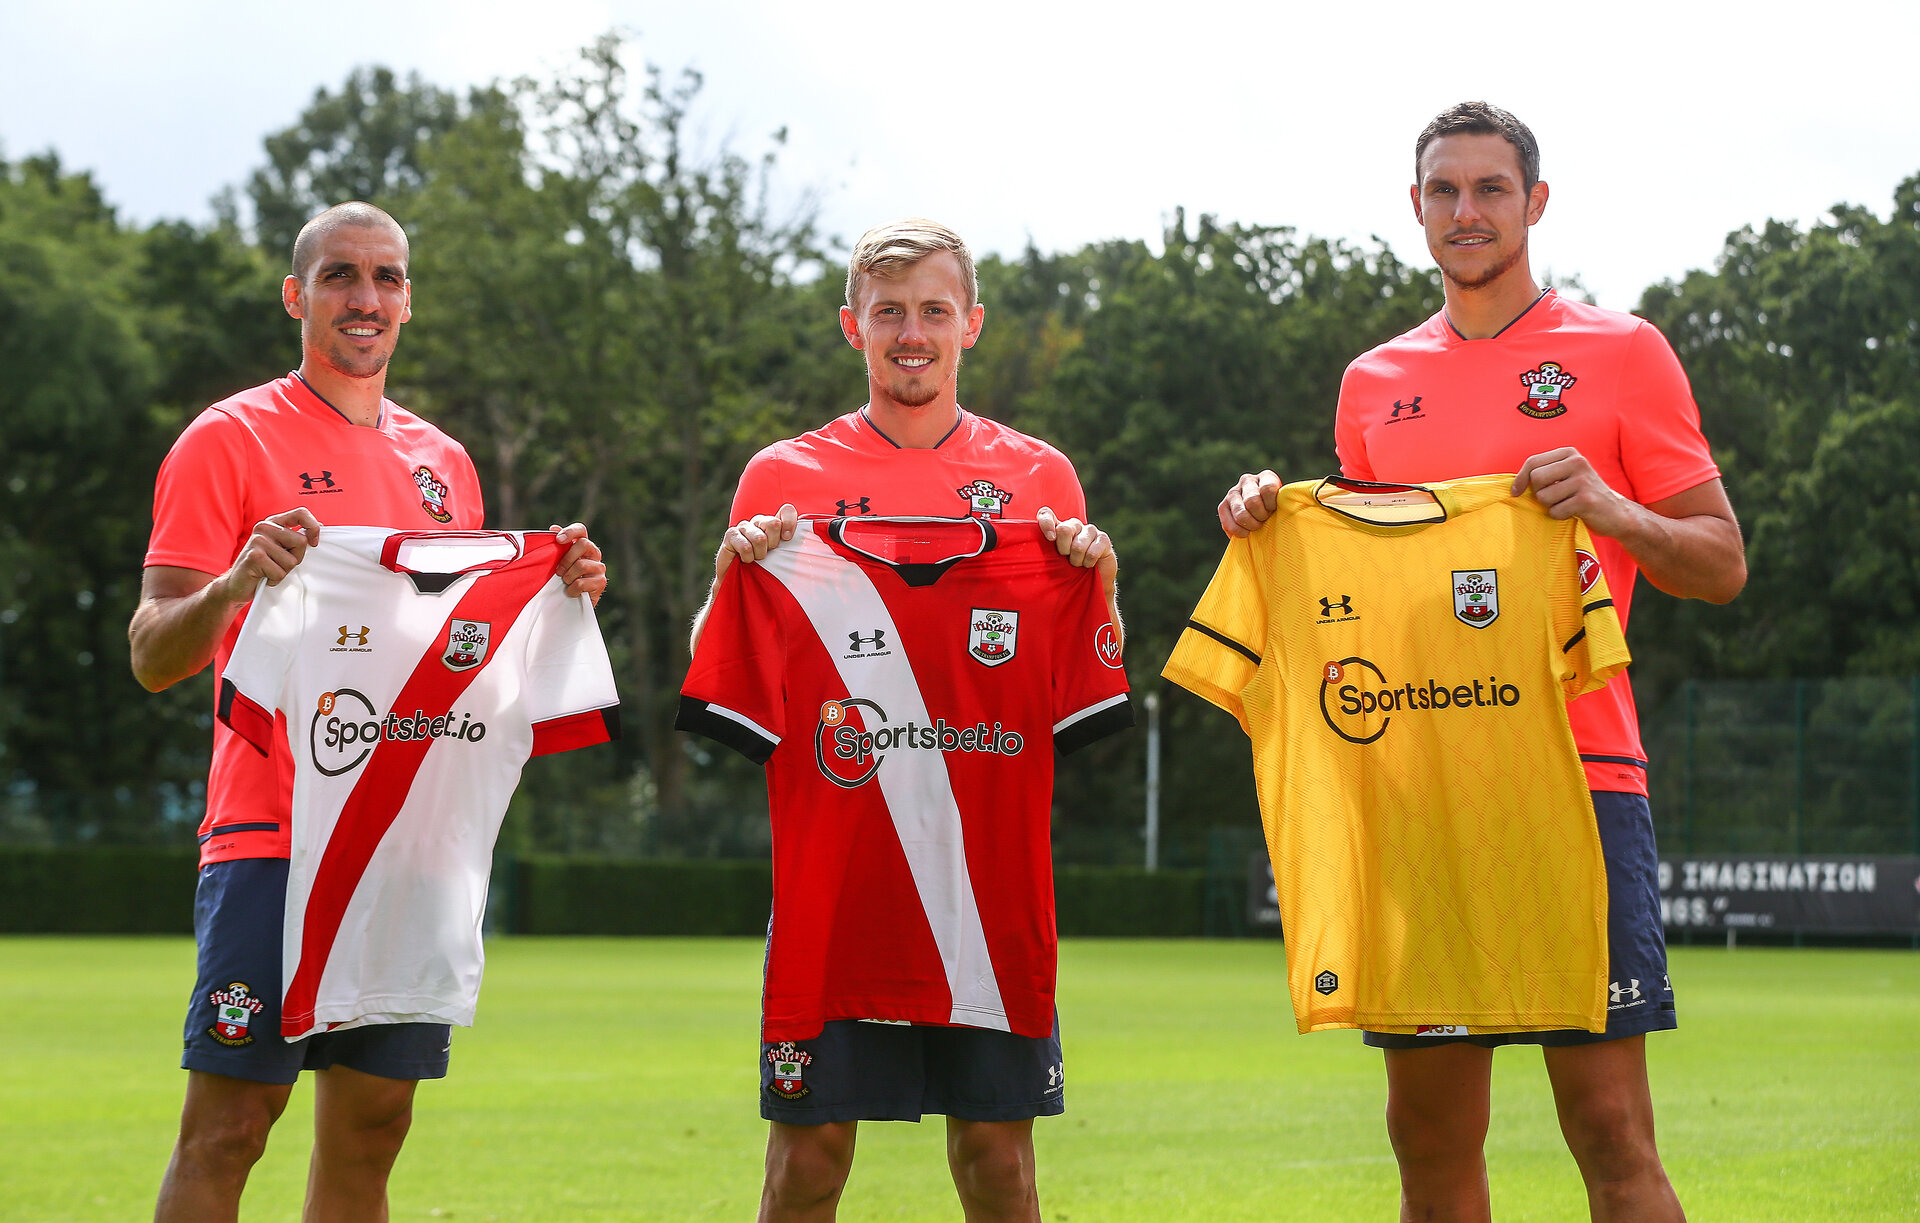 SOUTHAMPTON, ENGLAND - AUGUST 24: Southampton players L to R Oriol Romeu, James Ward-Prowse Alex McCarthy present the 2020/21 shirts with new sponsor Sportsbet.io displayed, pictured at the Staplewood Campus on August 24, 2020 in Southampton, England. (Photo by Matt Watson/Southampton FC via Getty Images)